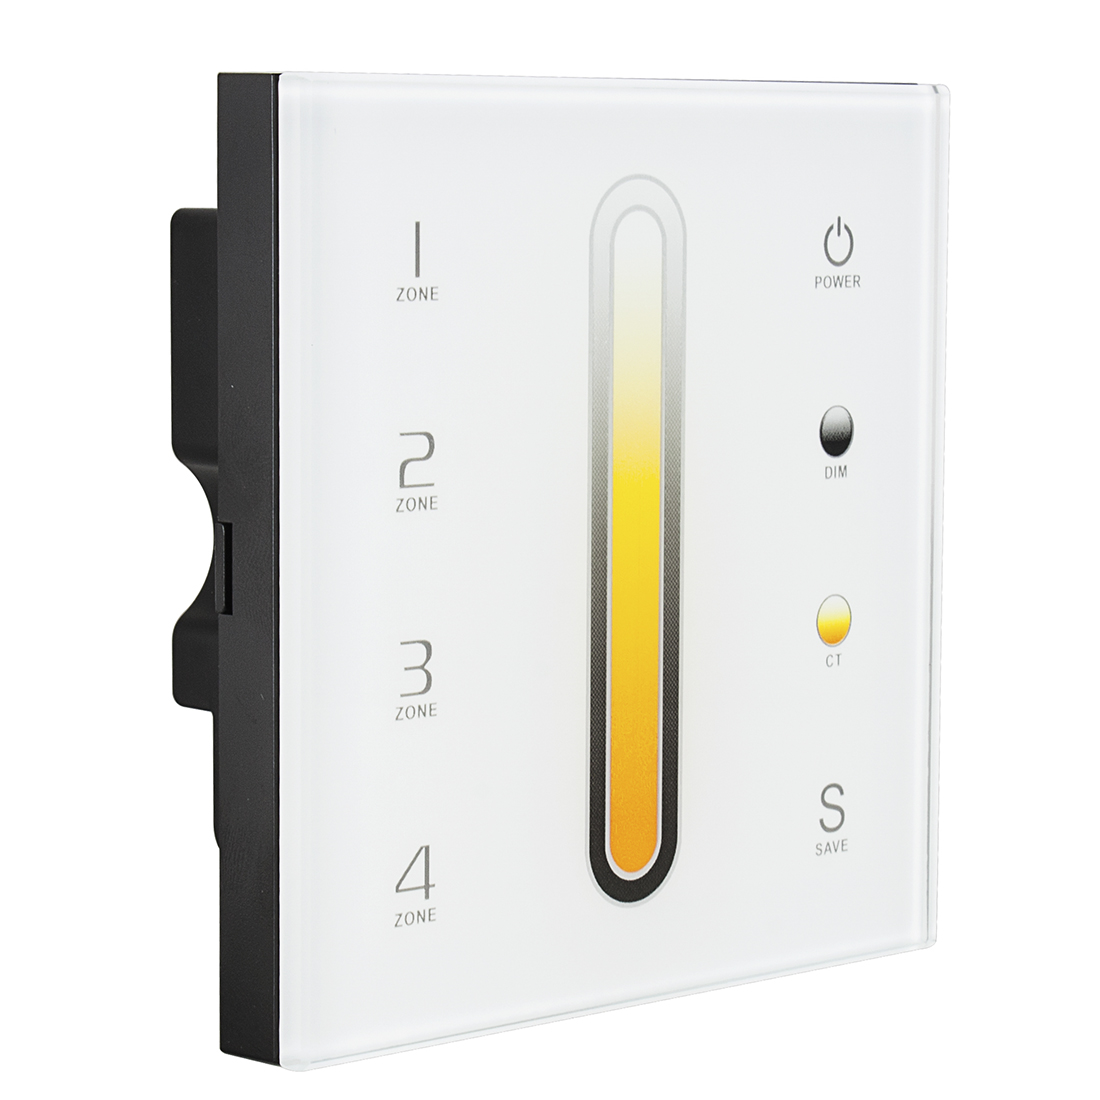 Wall Mount DC12-24V Color Temperature Touch Panel Controller for LED Strip Lighting 5 Year Warranty